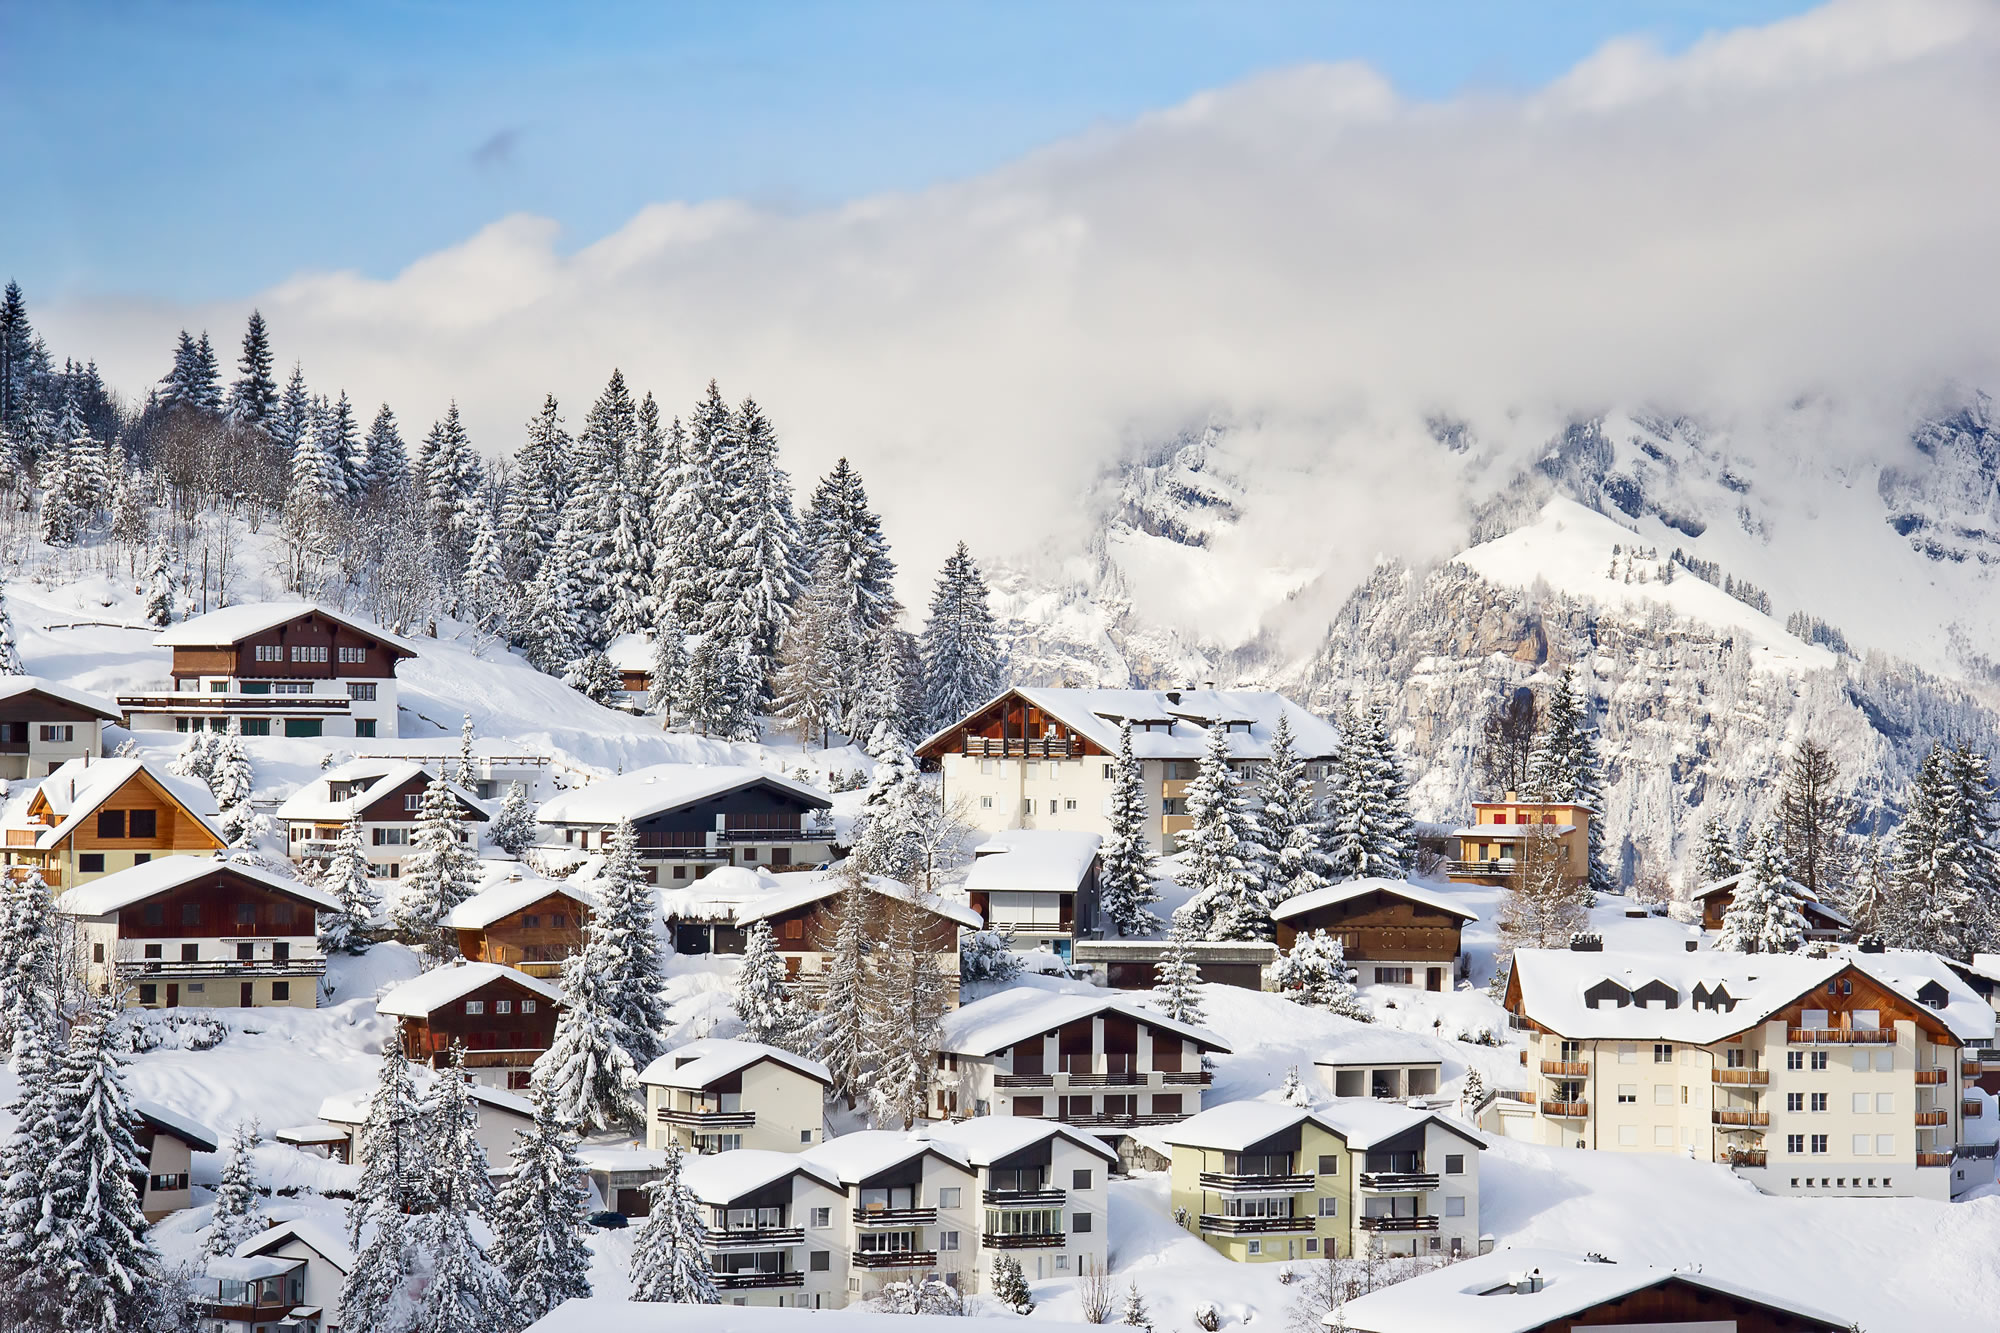 Winter in the Swiss Alps